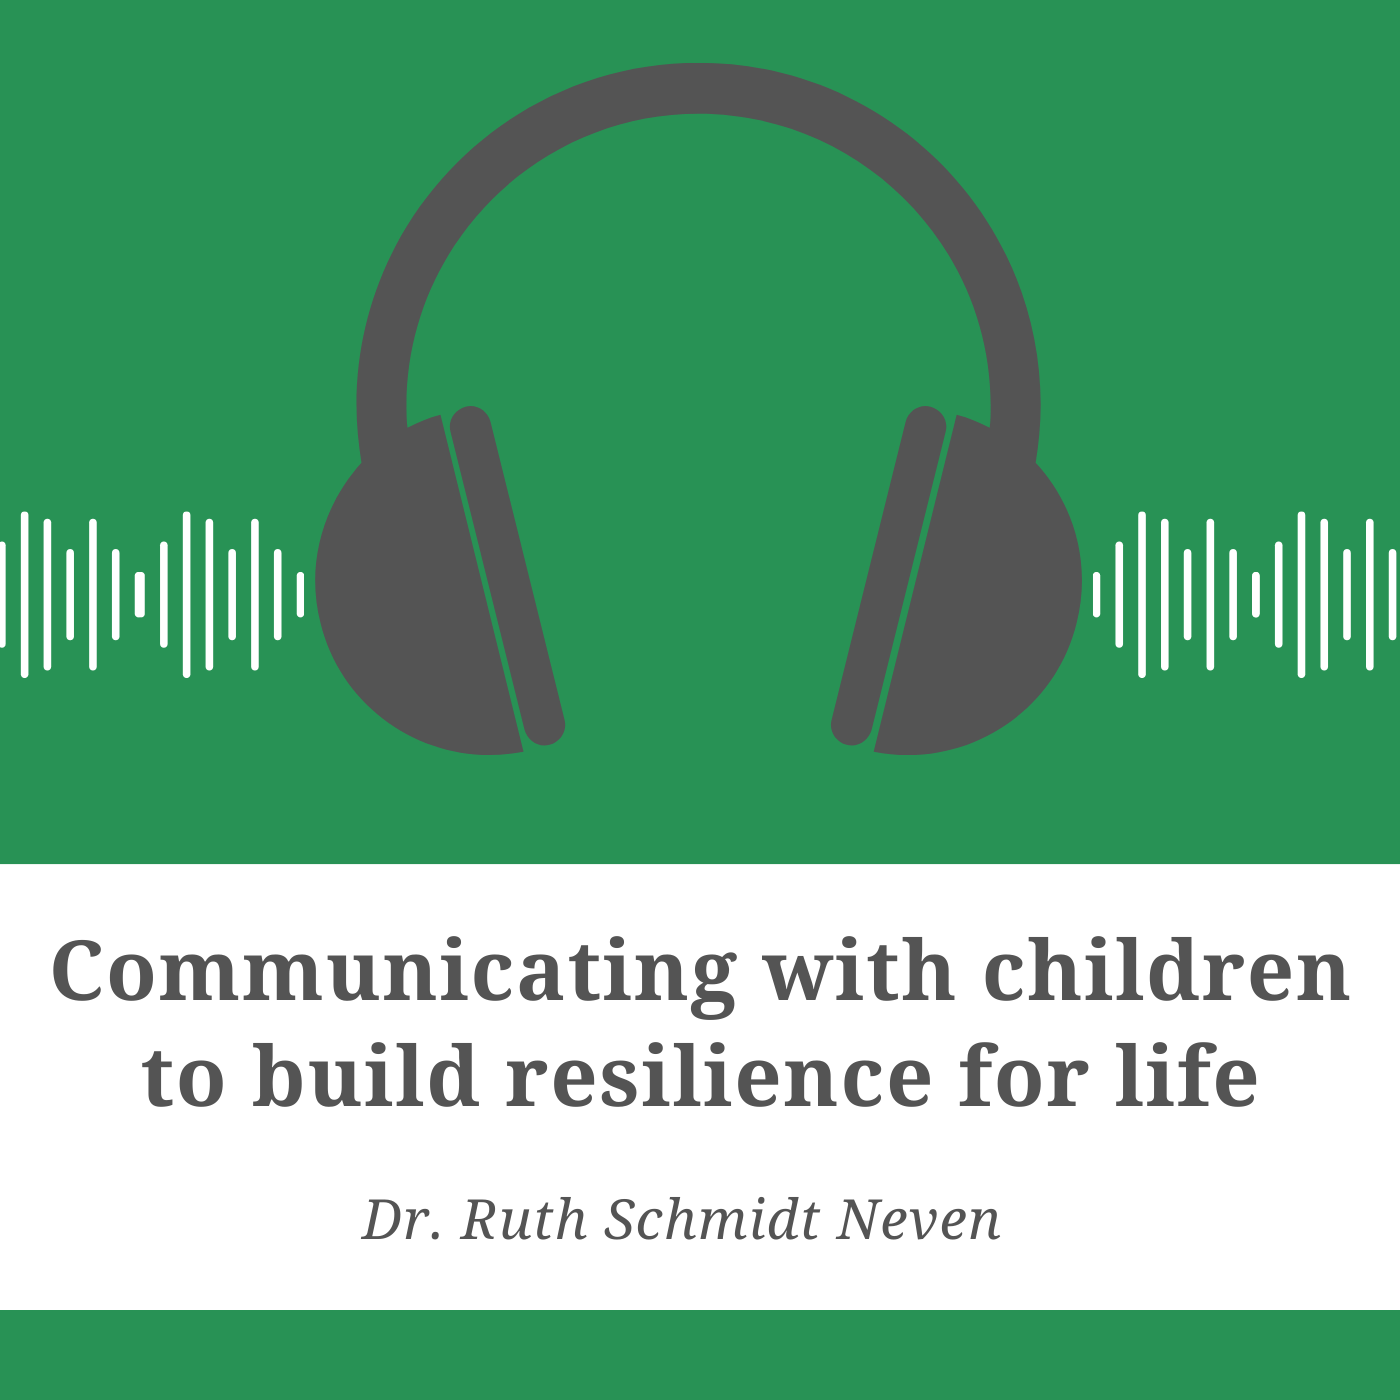 Communicating with children to build resilience for life